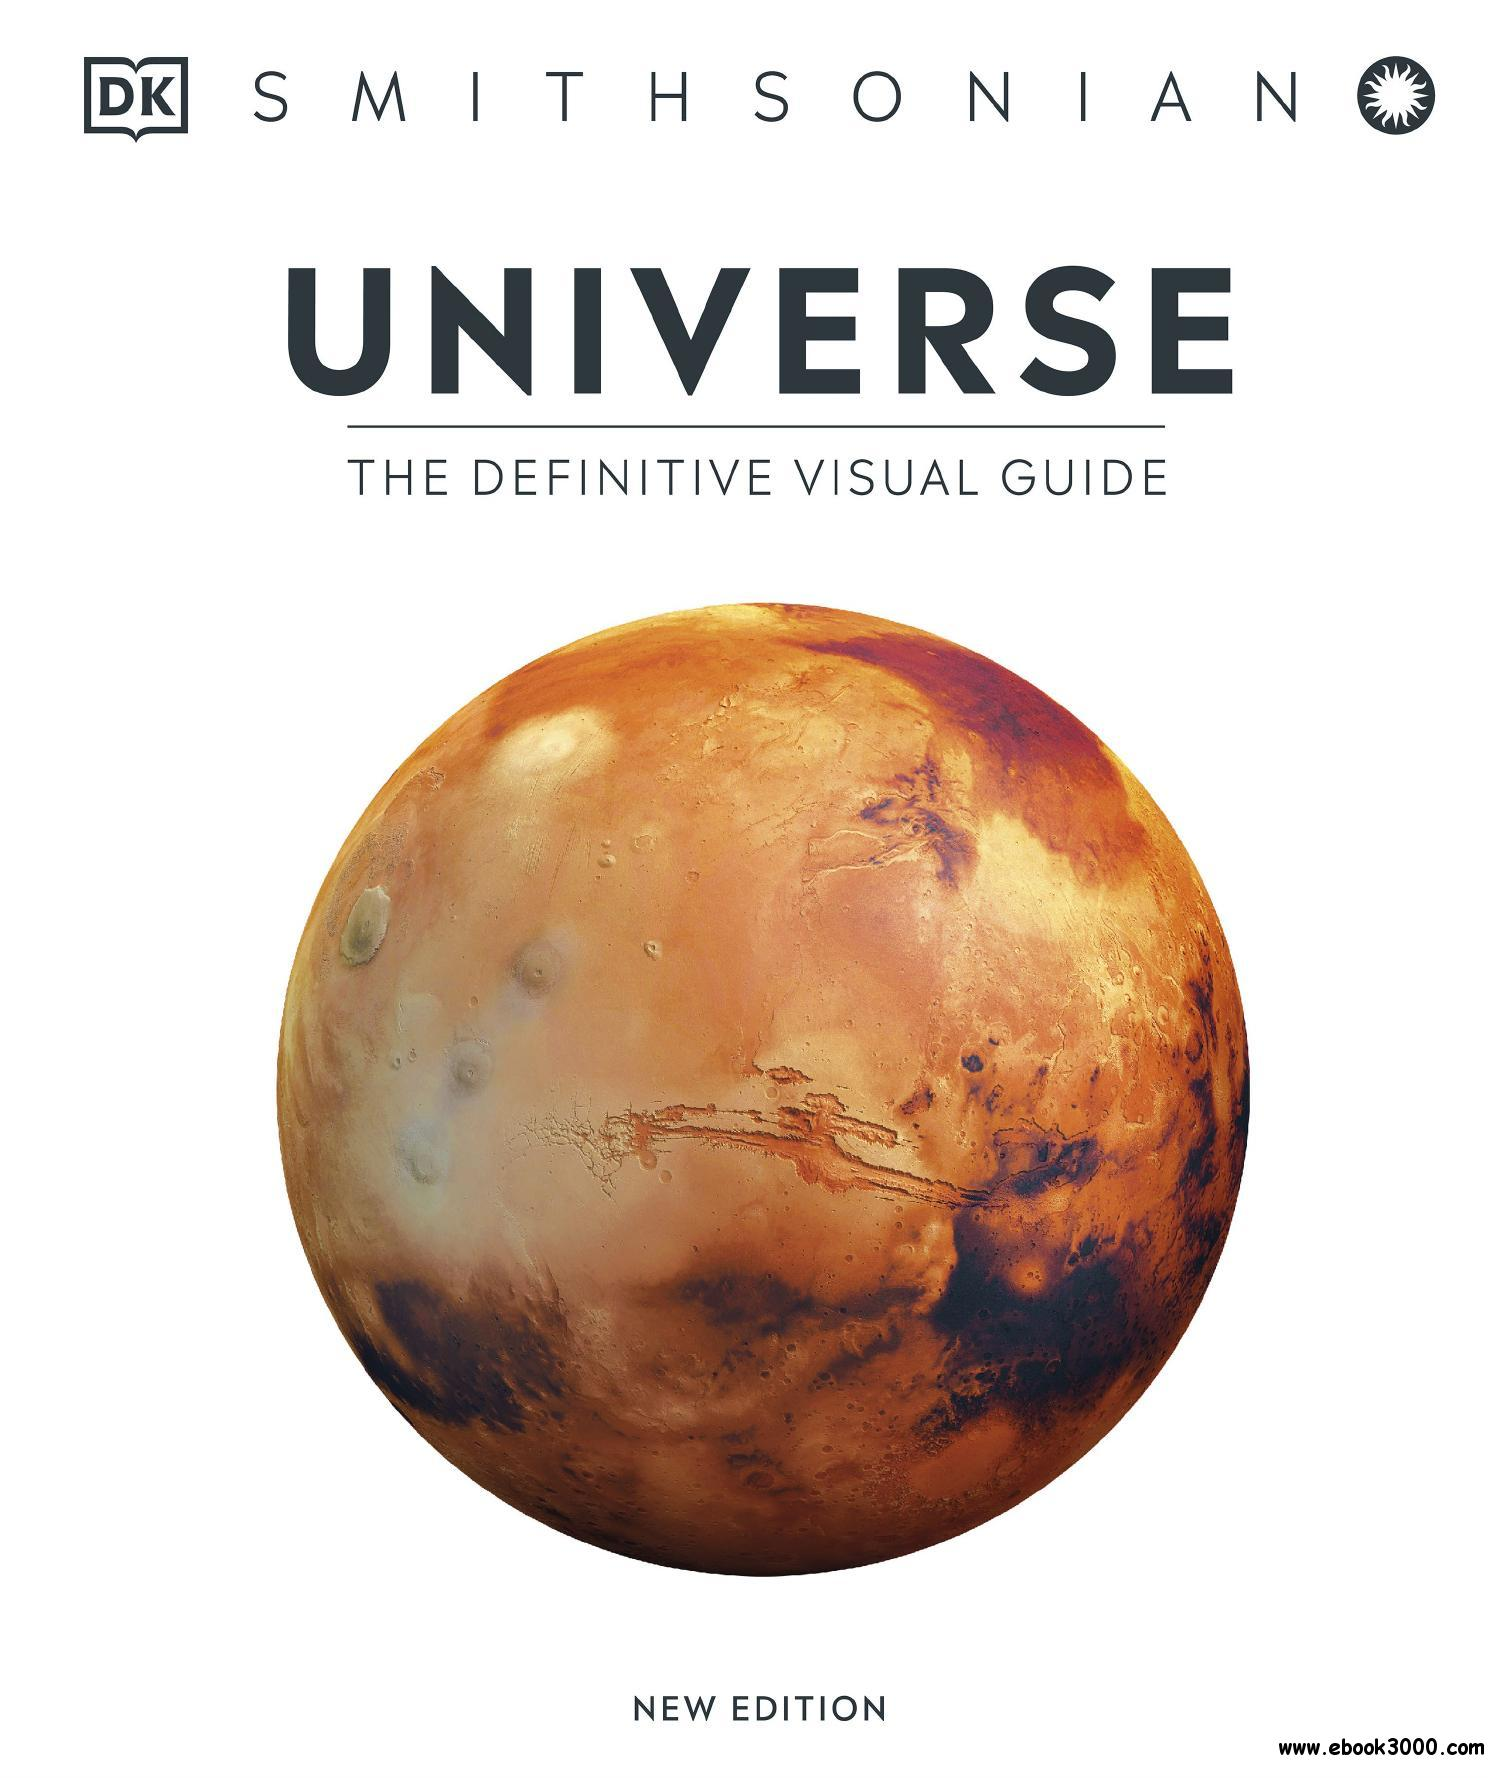 Universe: The Definitive Visual Guide, 3rd Edition